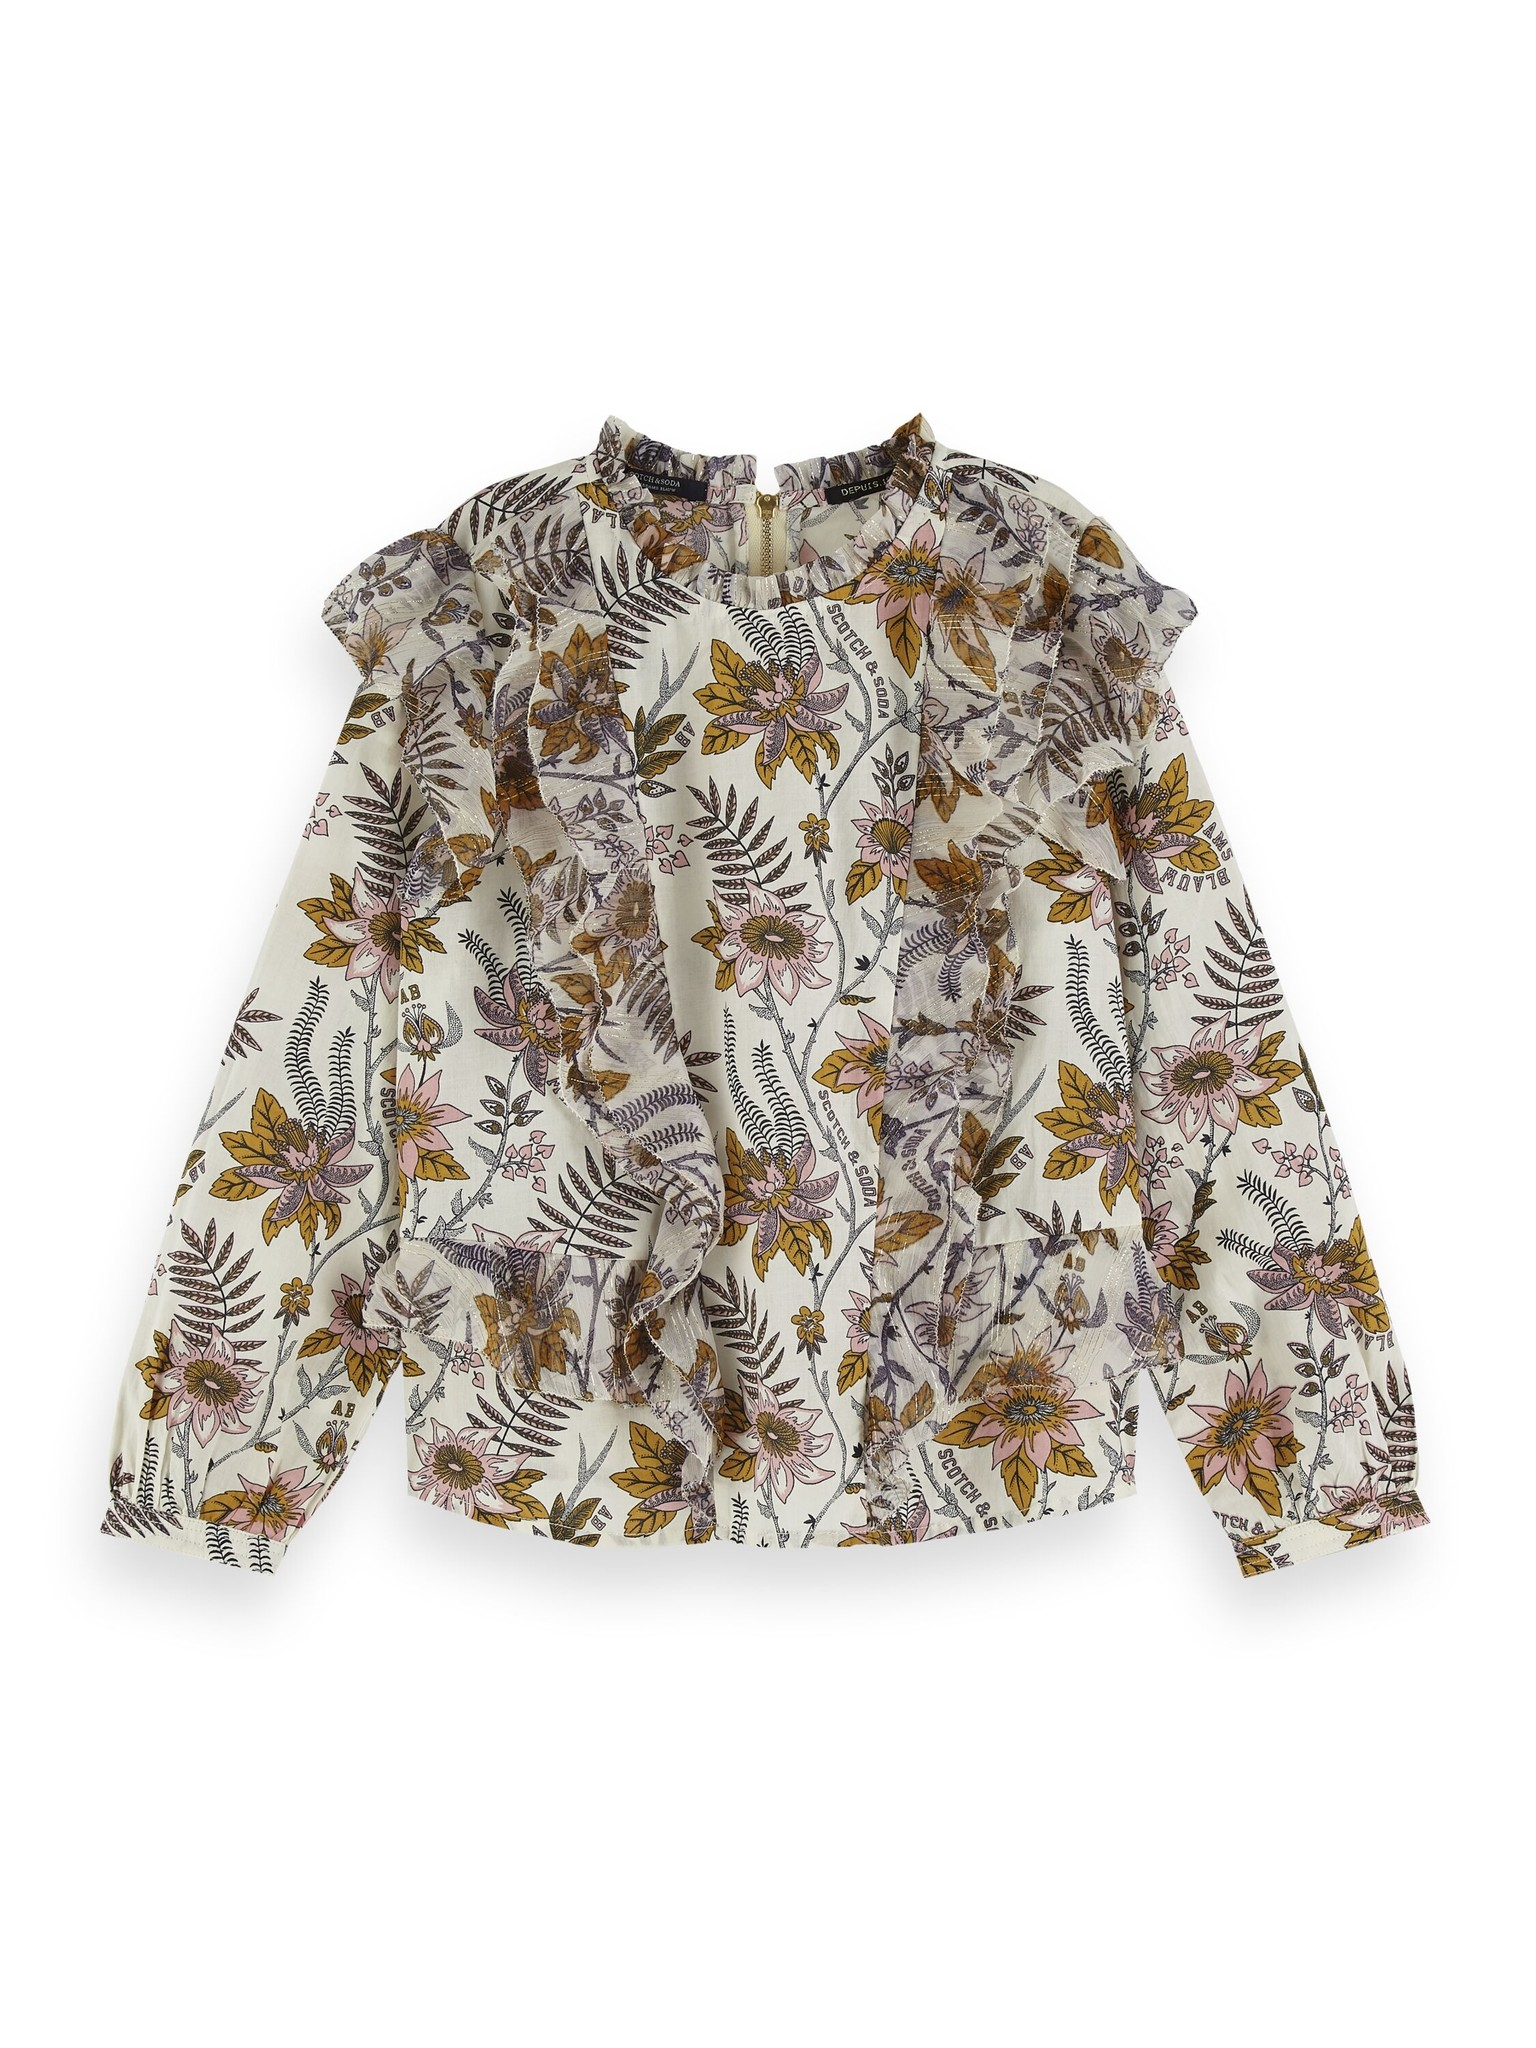 Scotch & Soda Floral allover printed top with ruffle details 154192 / 0217